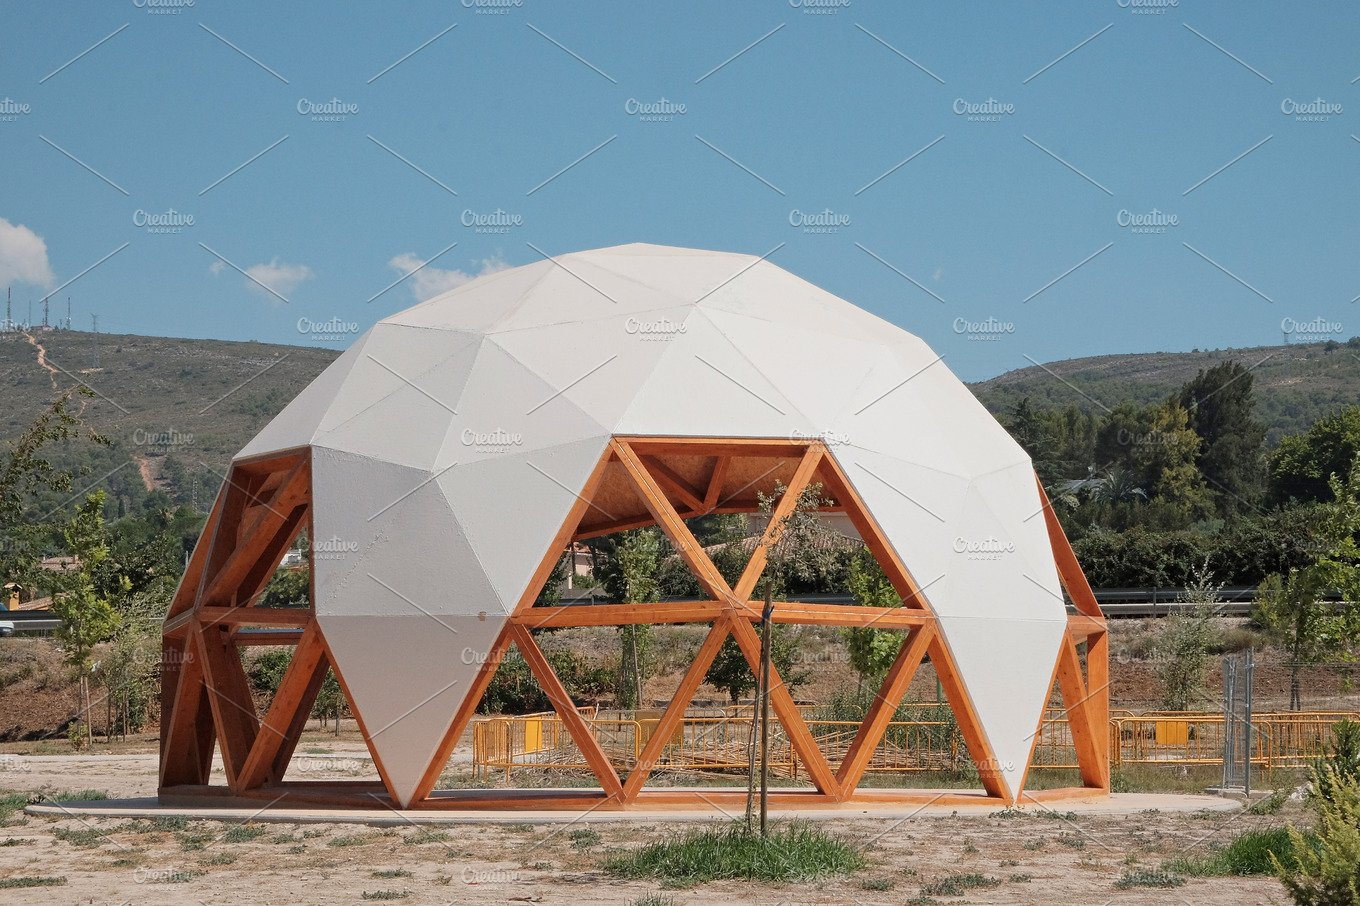 Geodesic Dome Building Materials